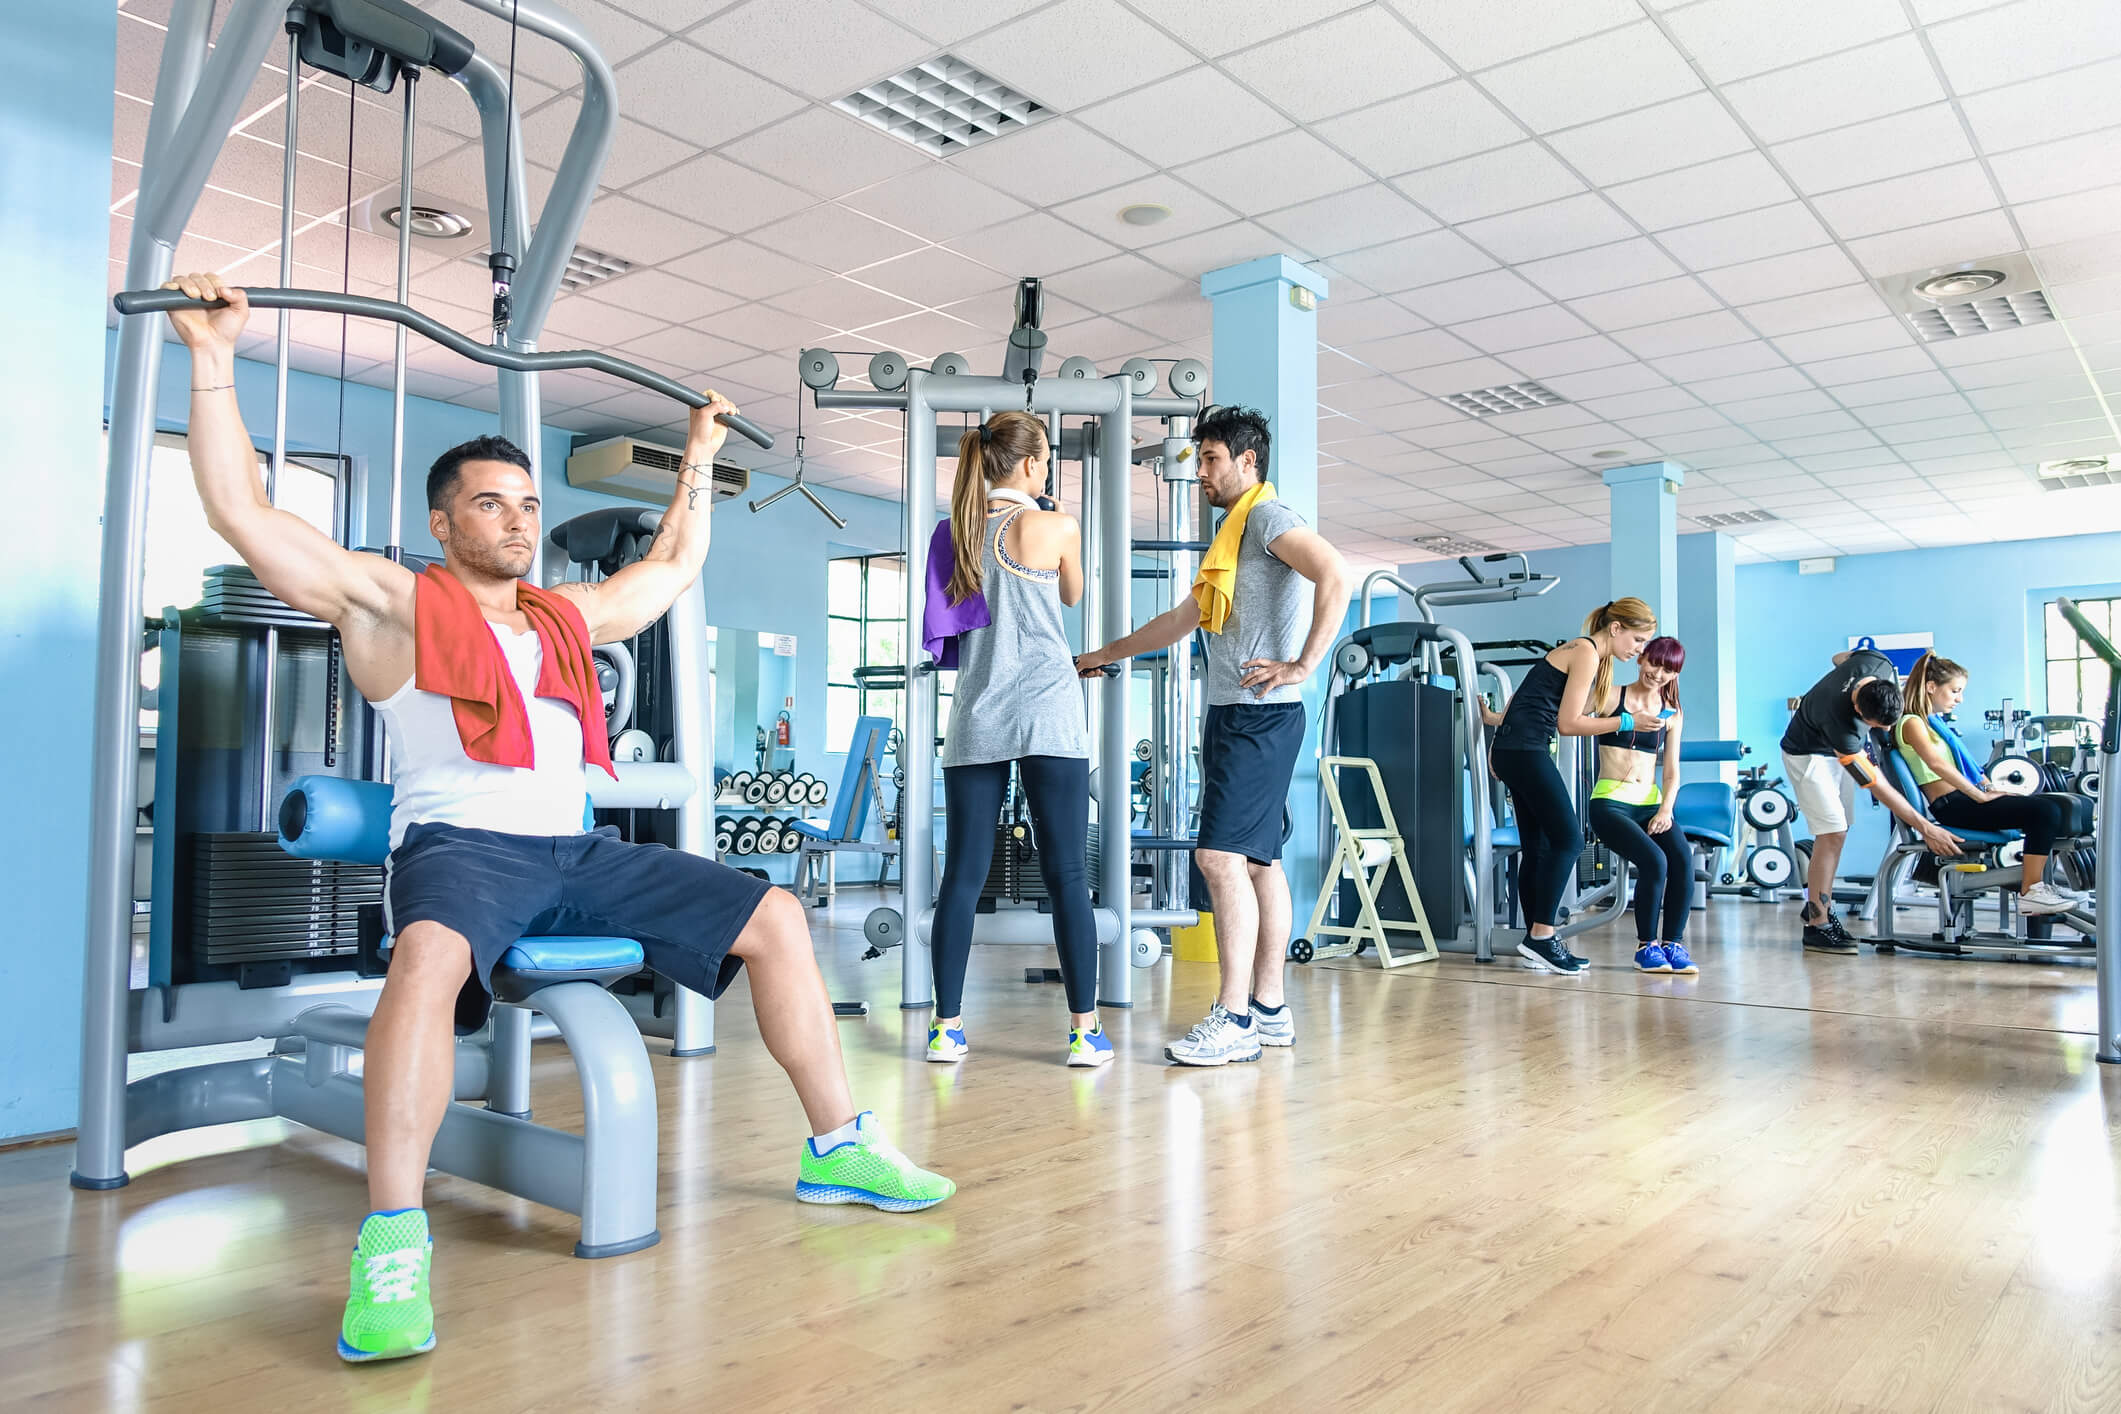 people working out inside of a gym